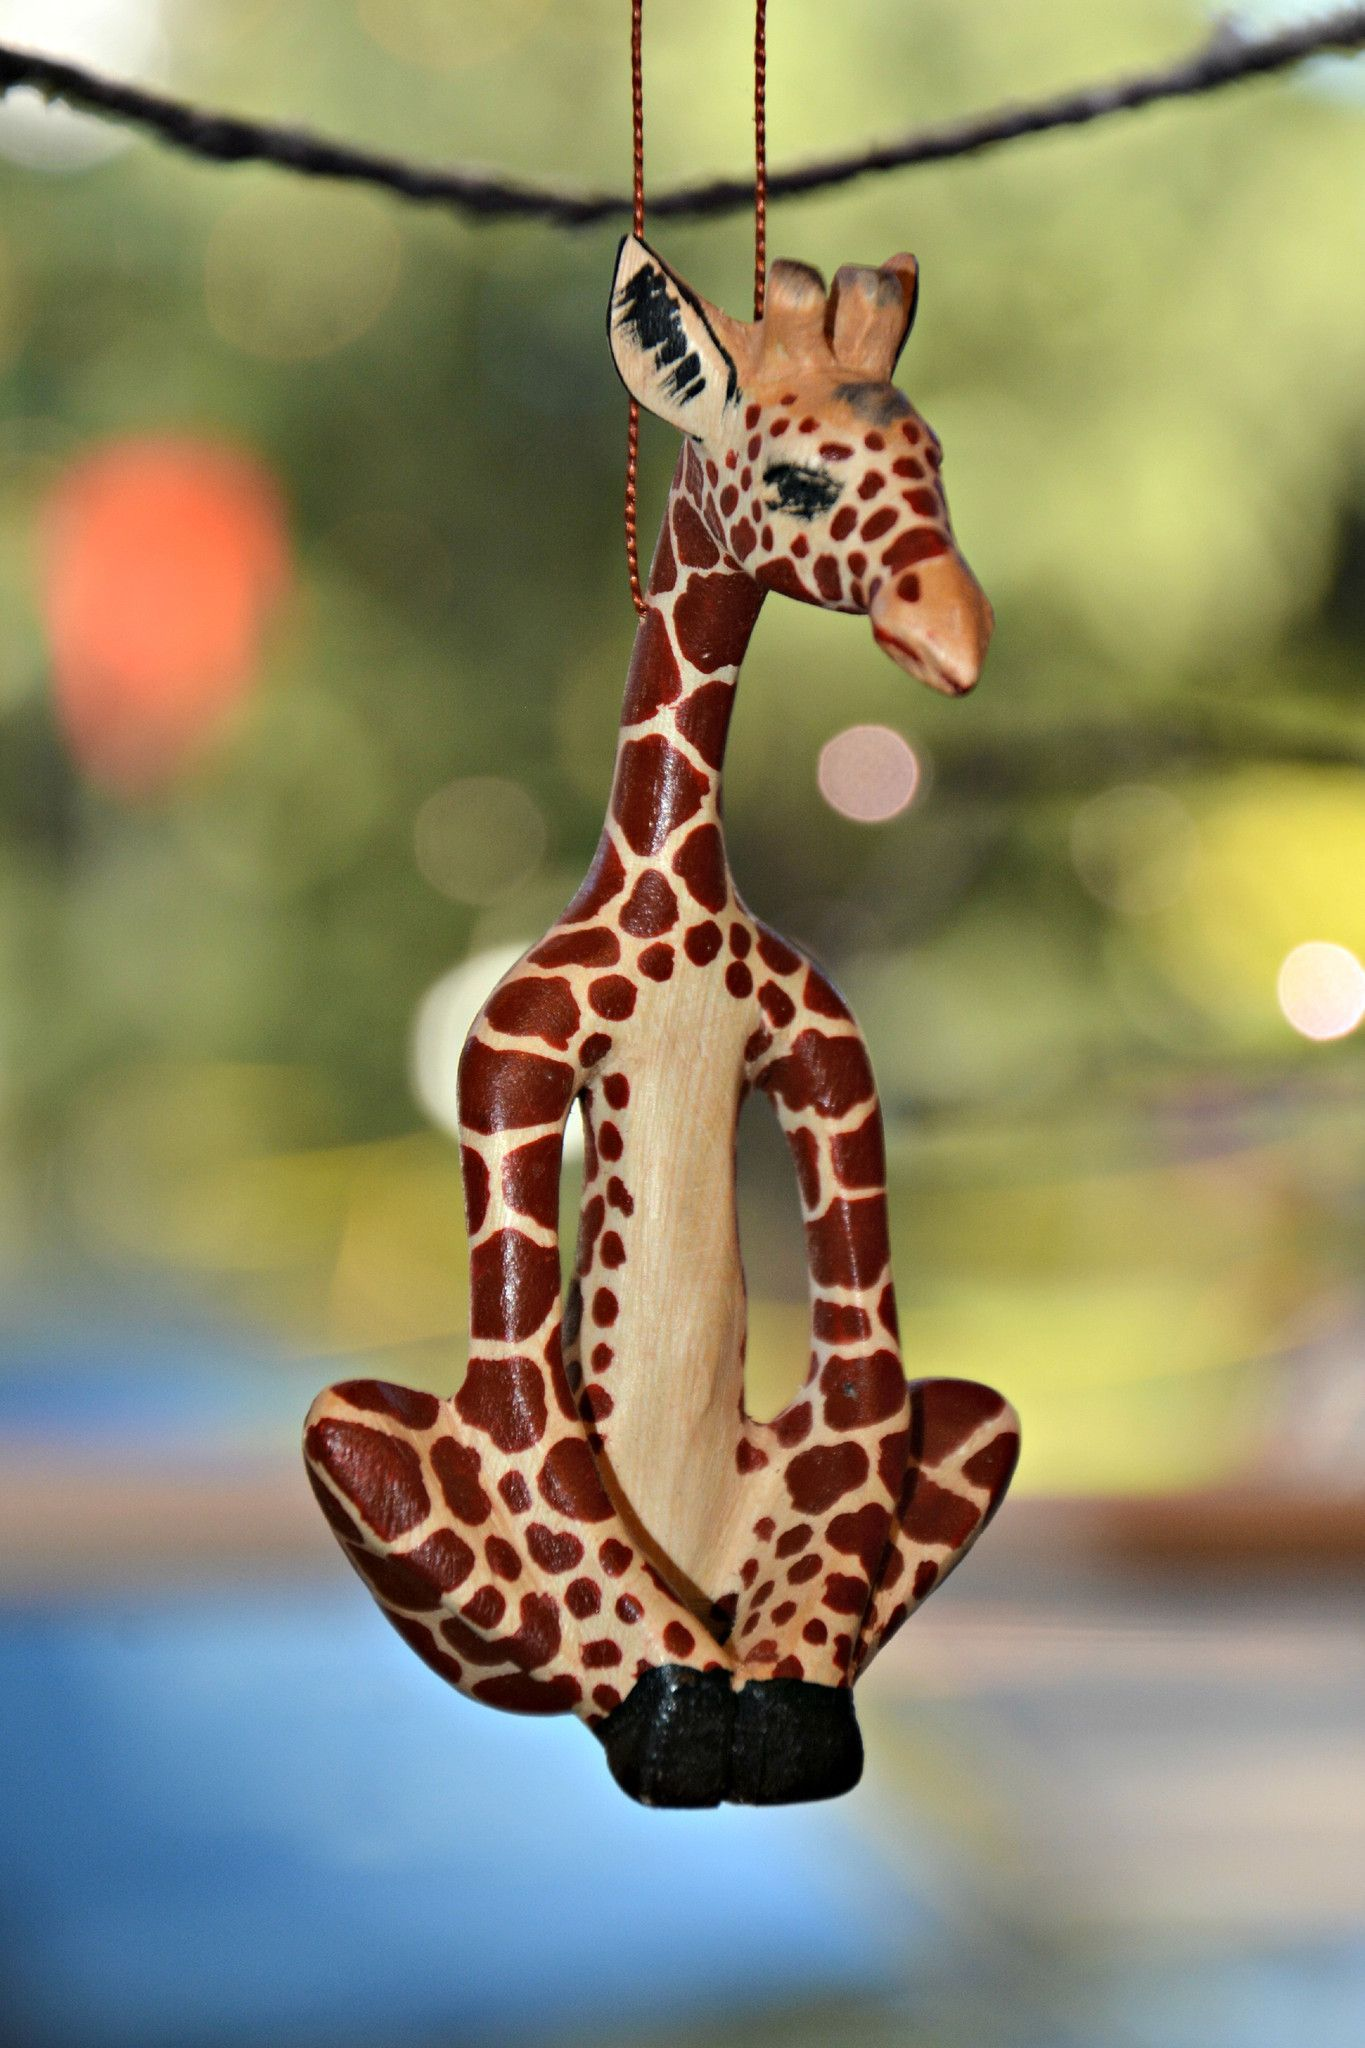 Our Yoga Giraffe Ornament will be the most peaceful